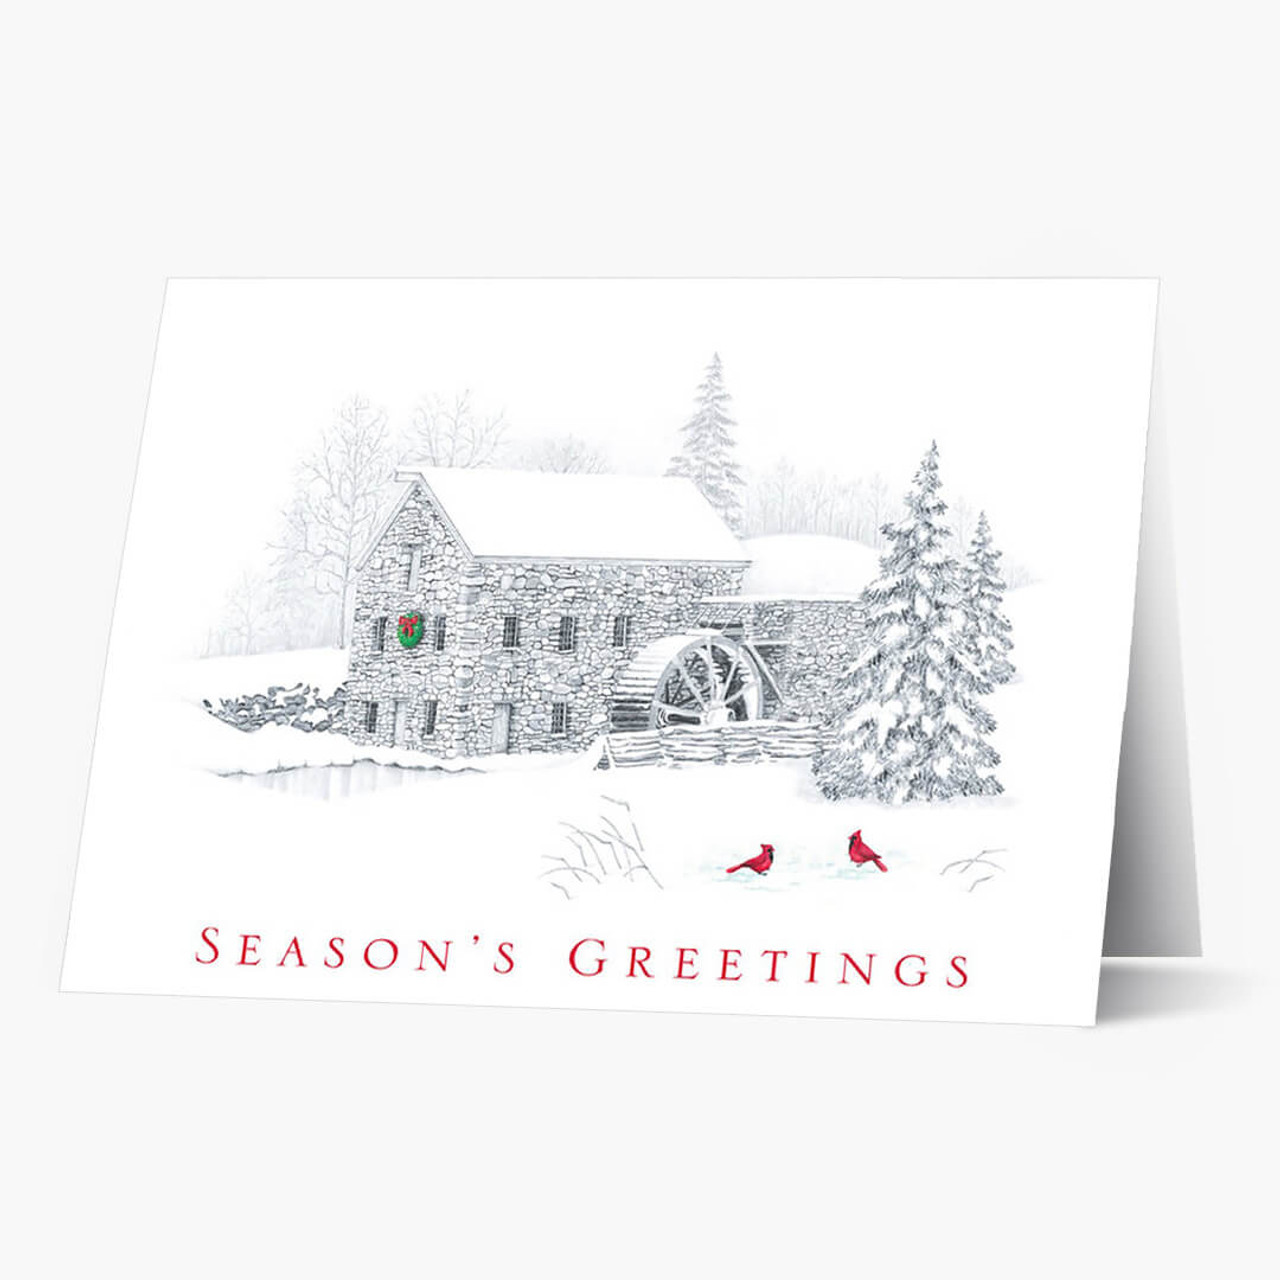 Gristmill Greetings Christmas Card